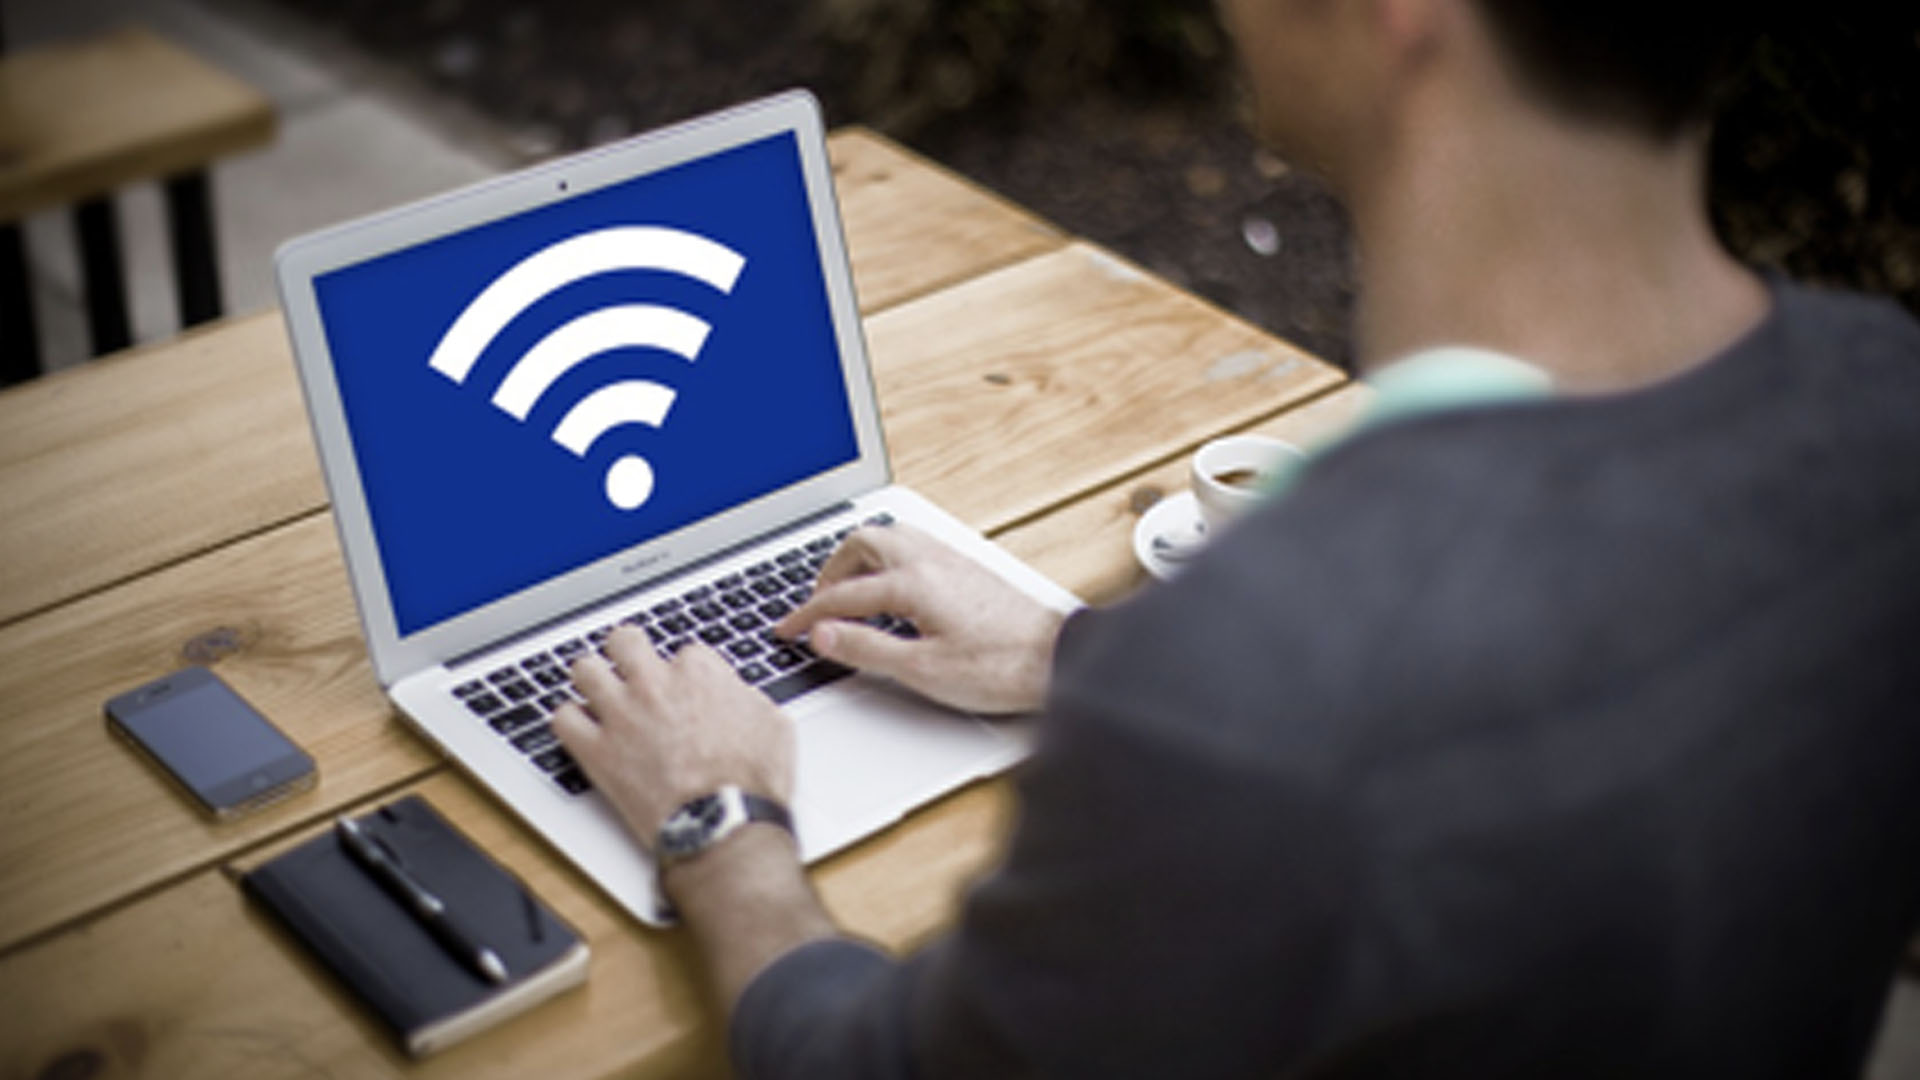 staying-safe-on-public-wifi How to Use Public Wi-Fi Safely